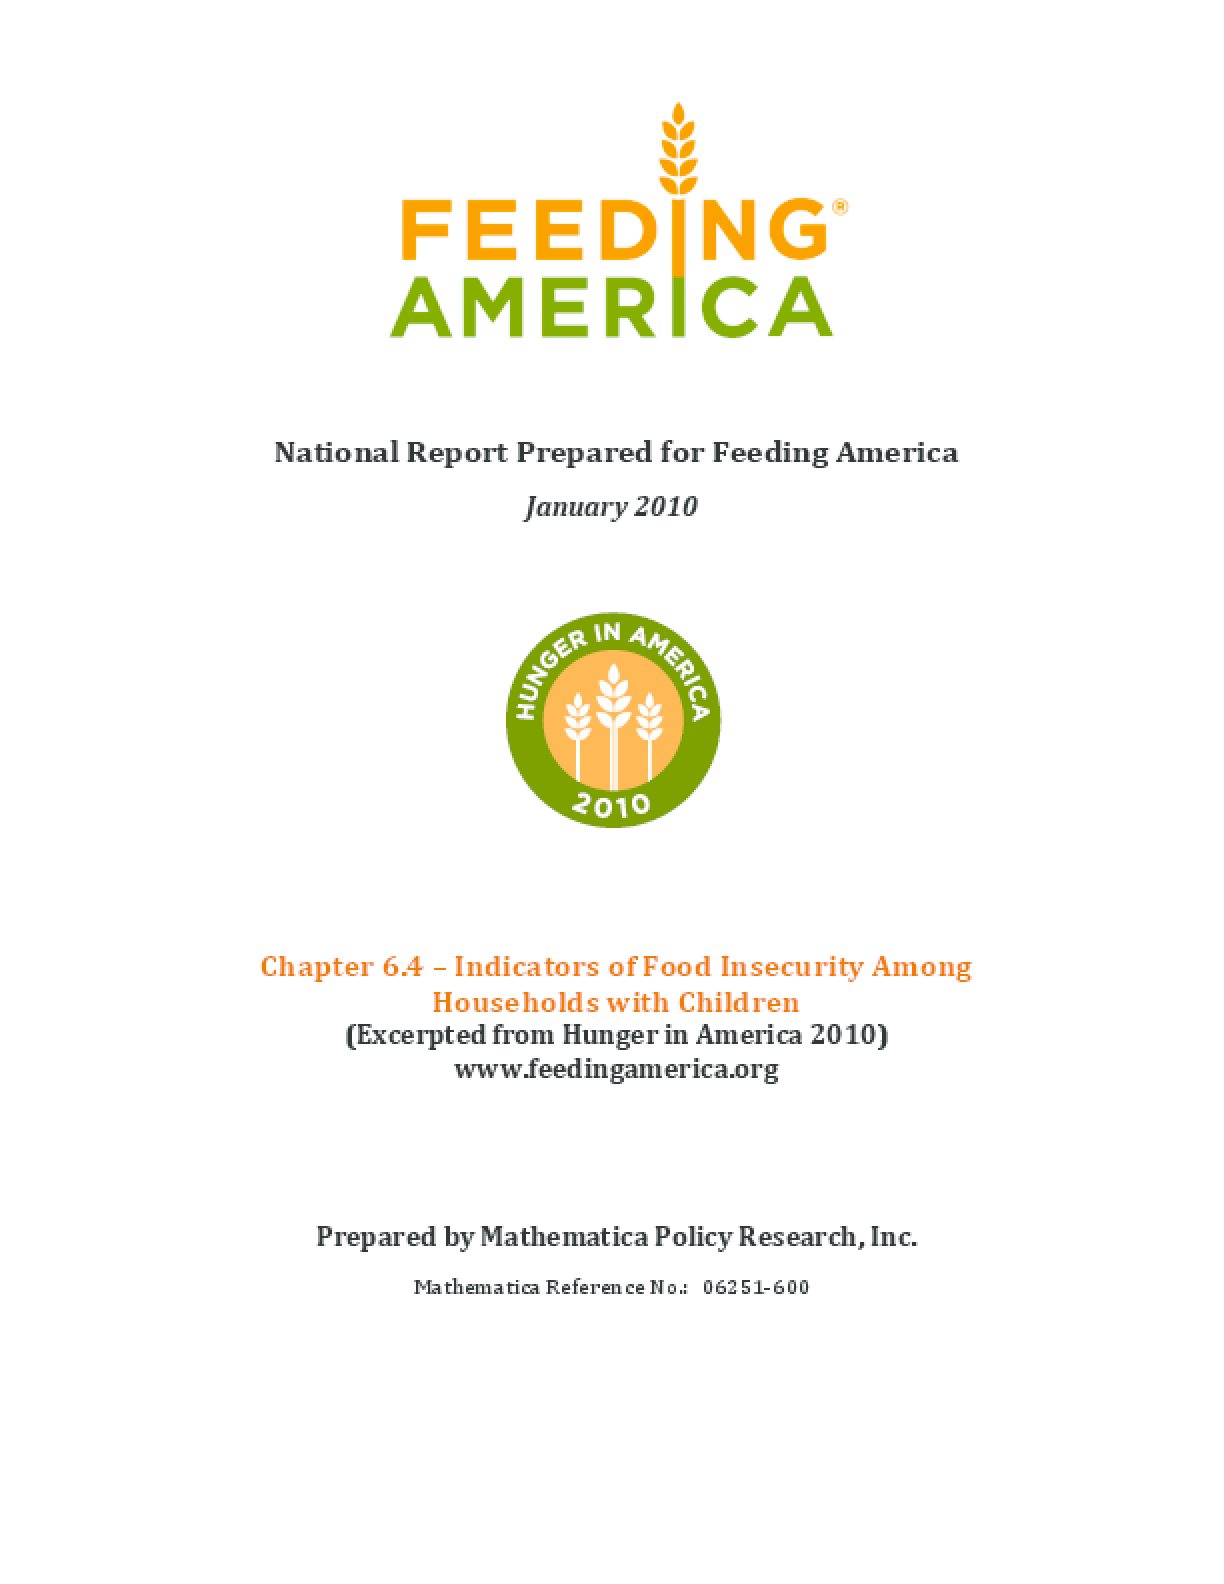 Indicators of Food Insecurity Among Feeding America Client Households with Children